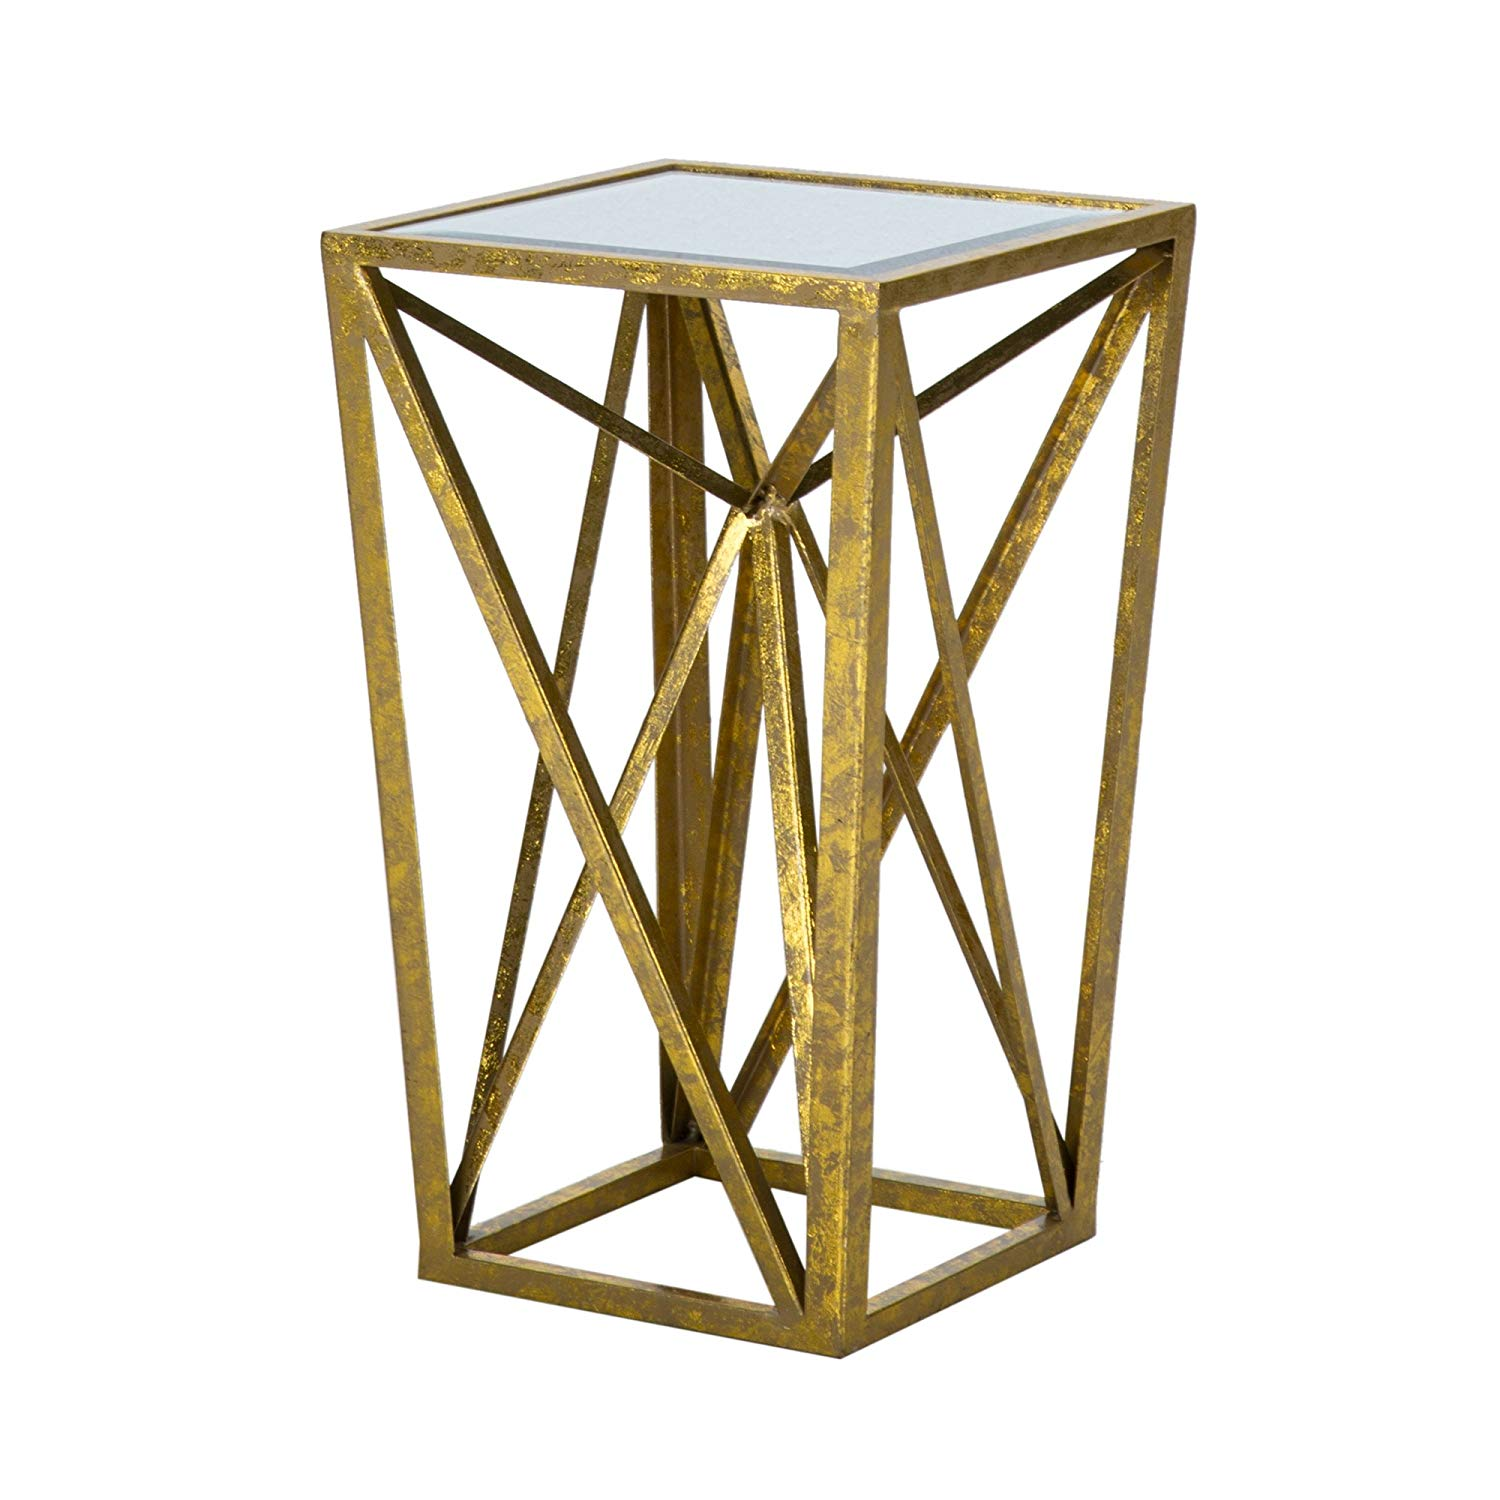 madison park zee accent tables mirror glass metal gold mirrored table side angular design modern style end piece top hollow round kitchen sets wine rack ashley furniture coffee